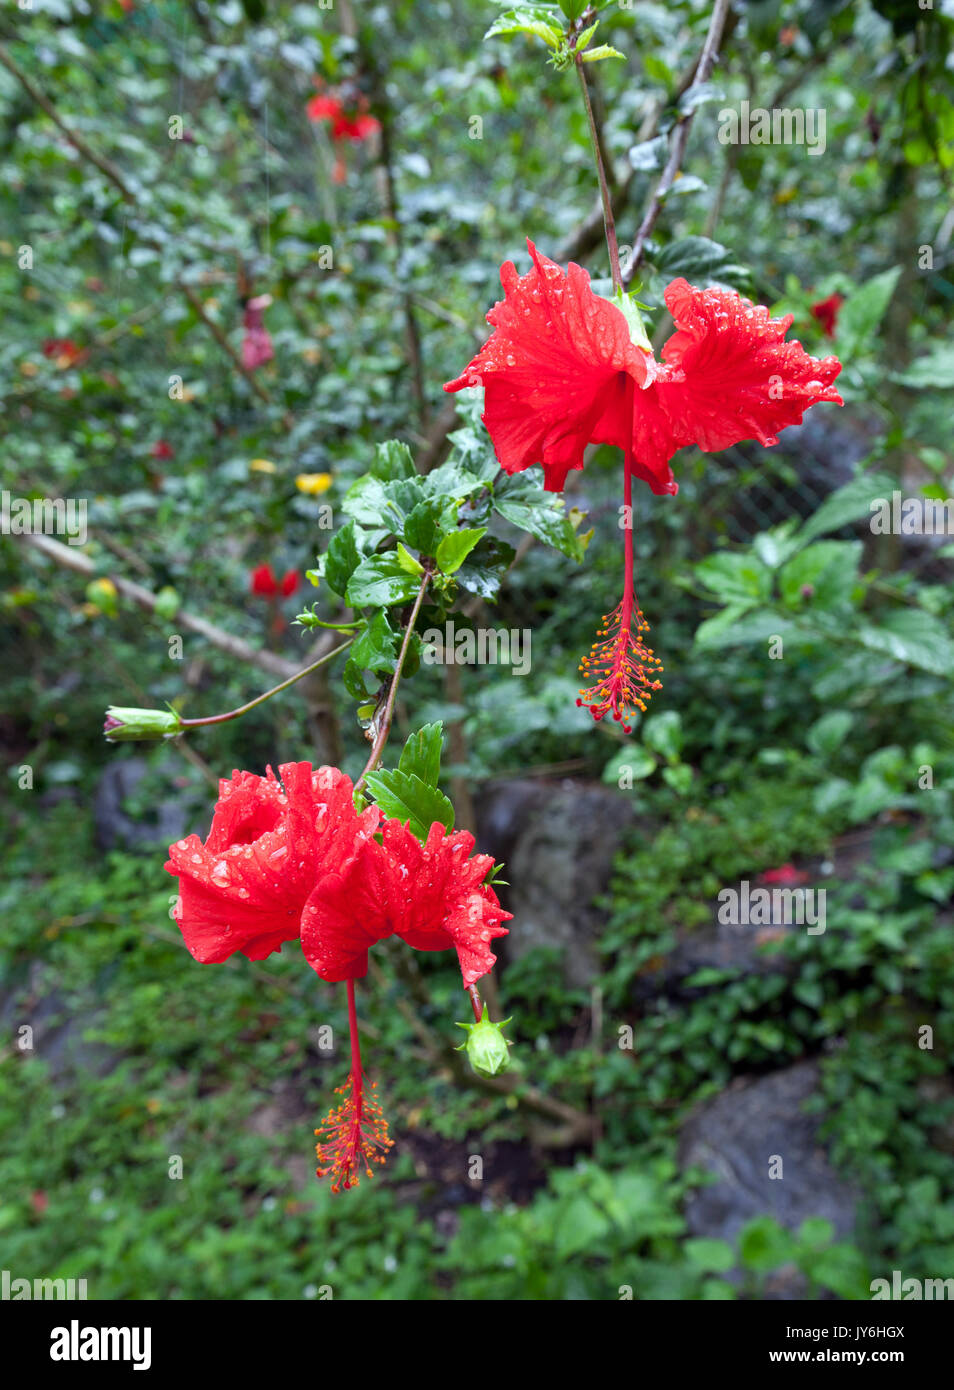 Close up of red flowers in the rainforest of Kinabalu Park, Borneo - Stock Image